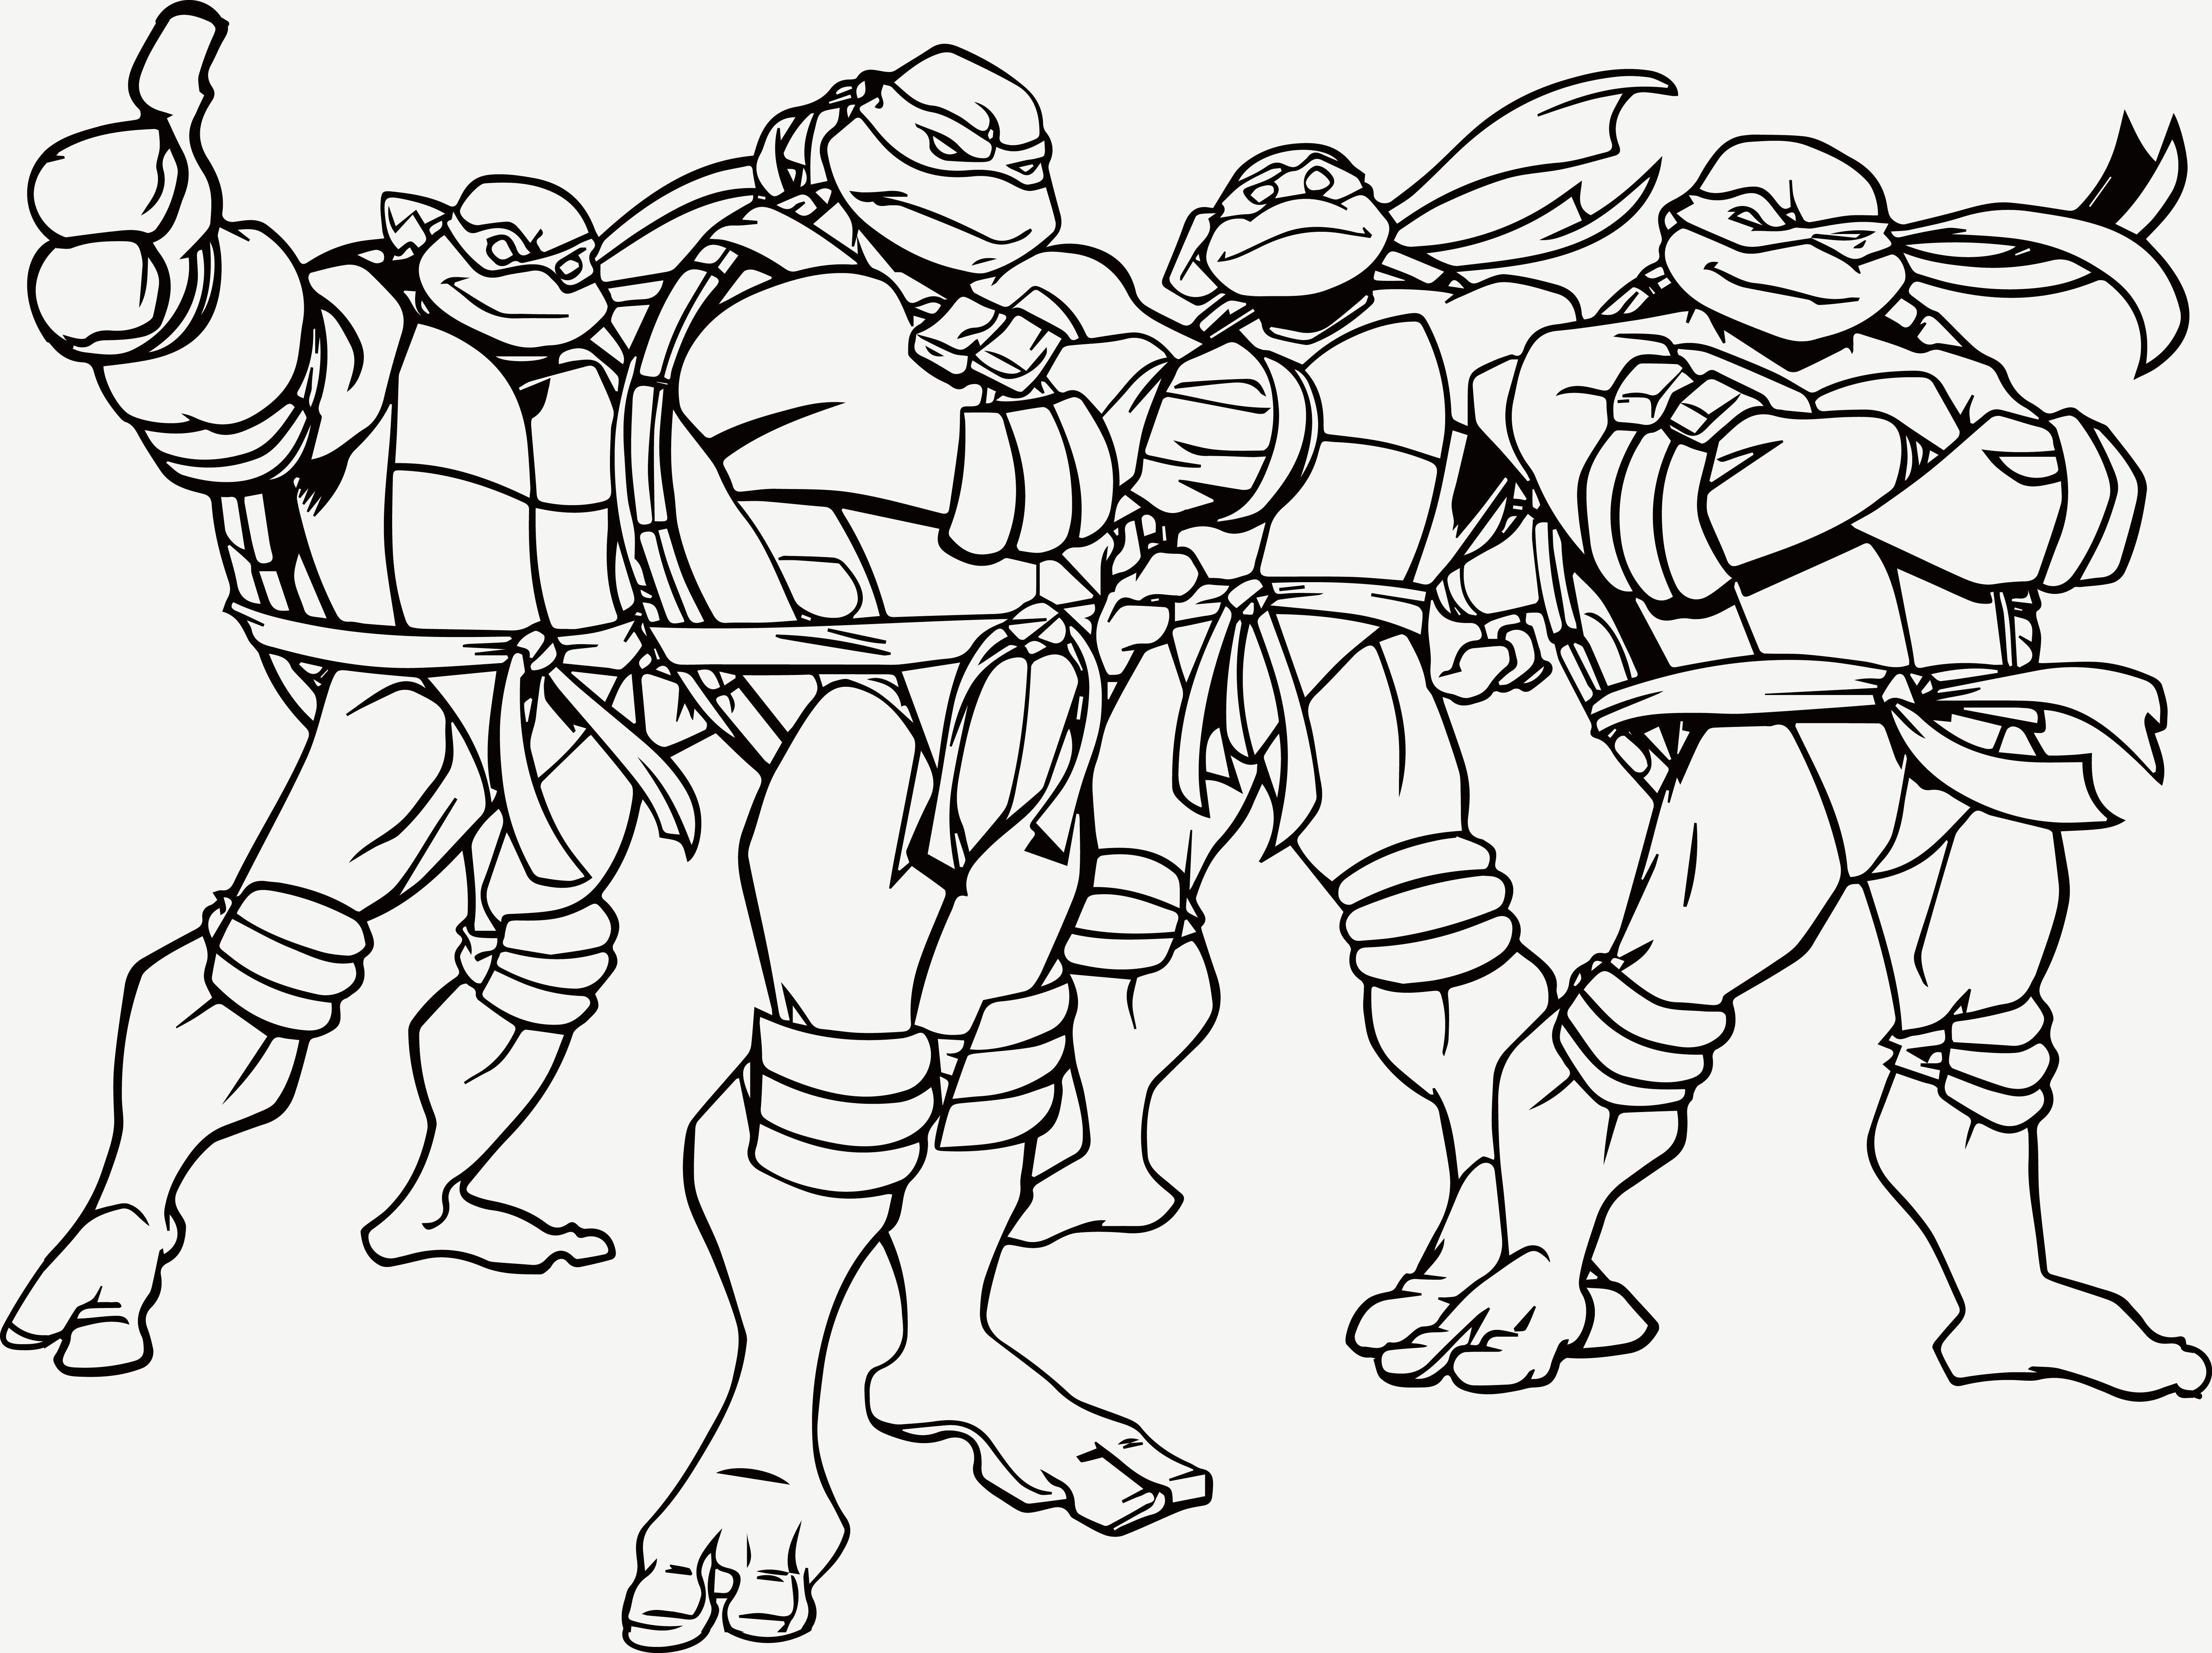 ninja turtle coloring pages for kids tmnt coloring pages ninja turtle coloring pages turtle ninja turtle for coloring pages kids